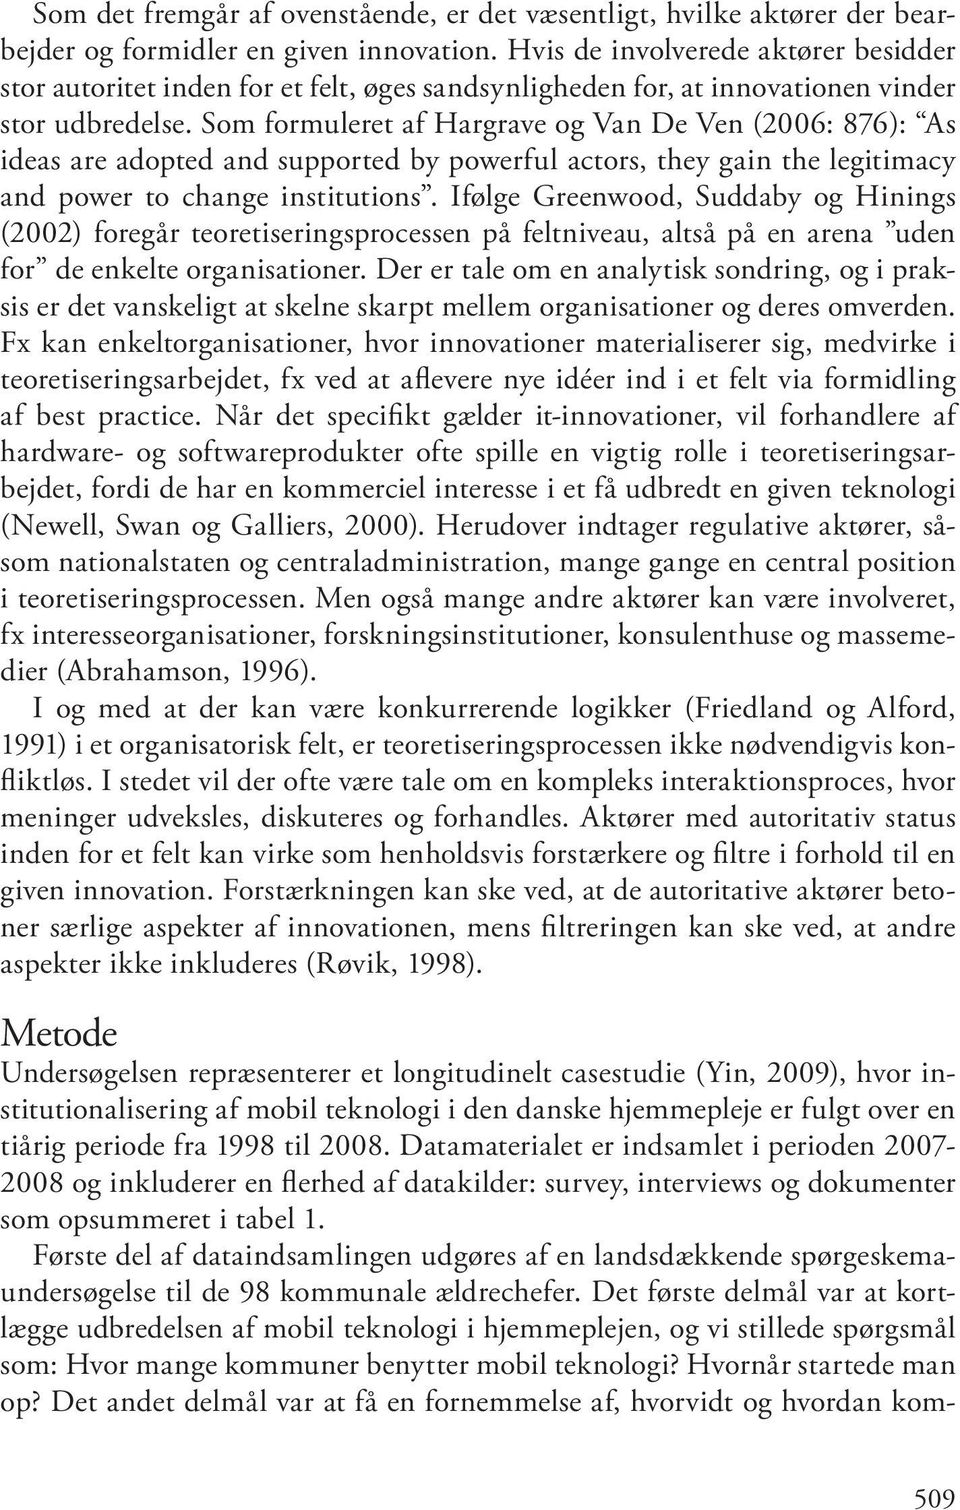 Som formuleret af Hargrave og Van De Ven (2006: 876): As ideas are adopted and supported by powerful actors, they gain the legitimacy and power to change institutions.